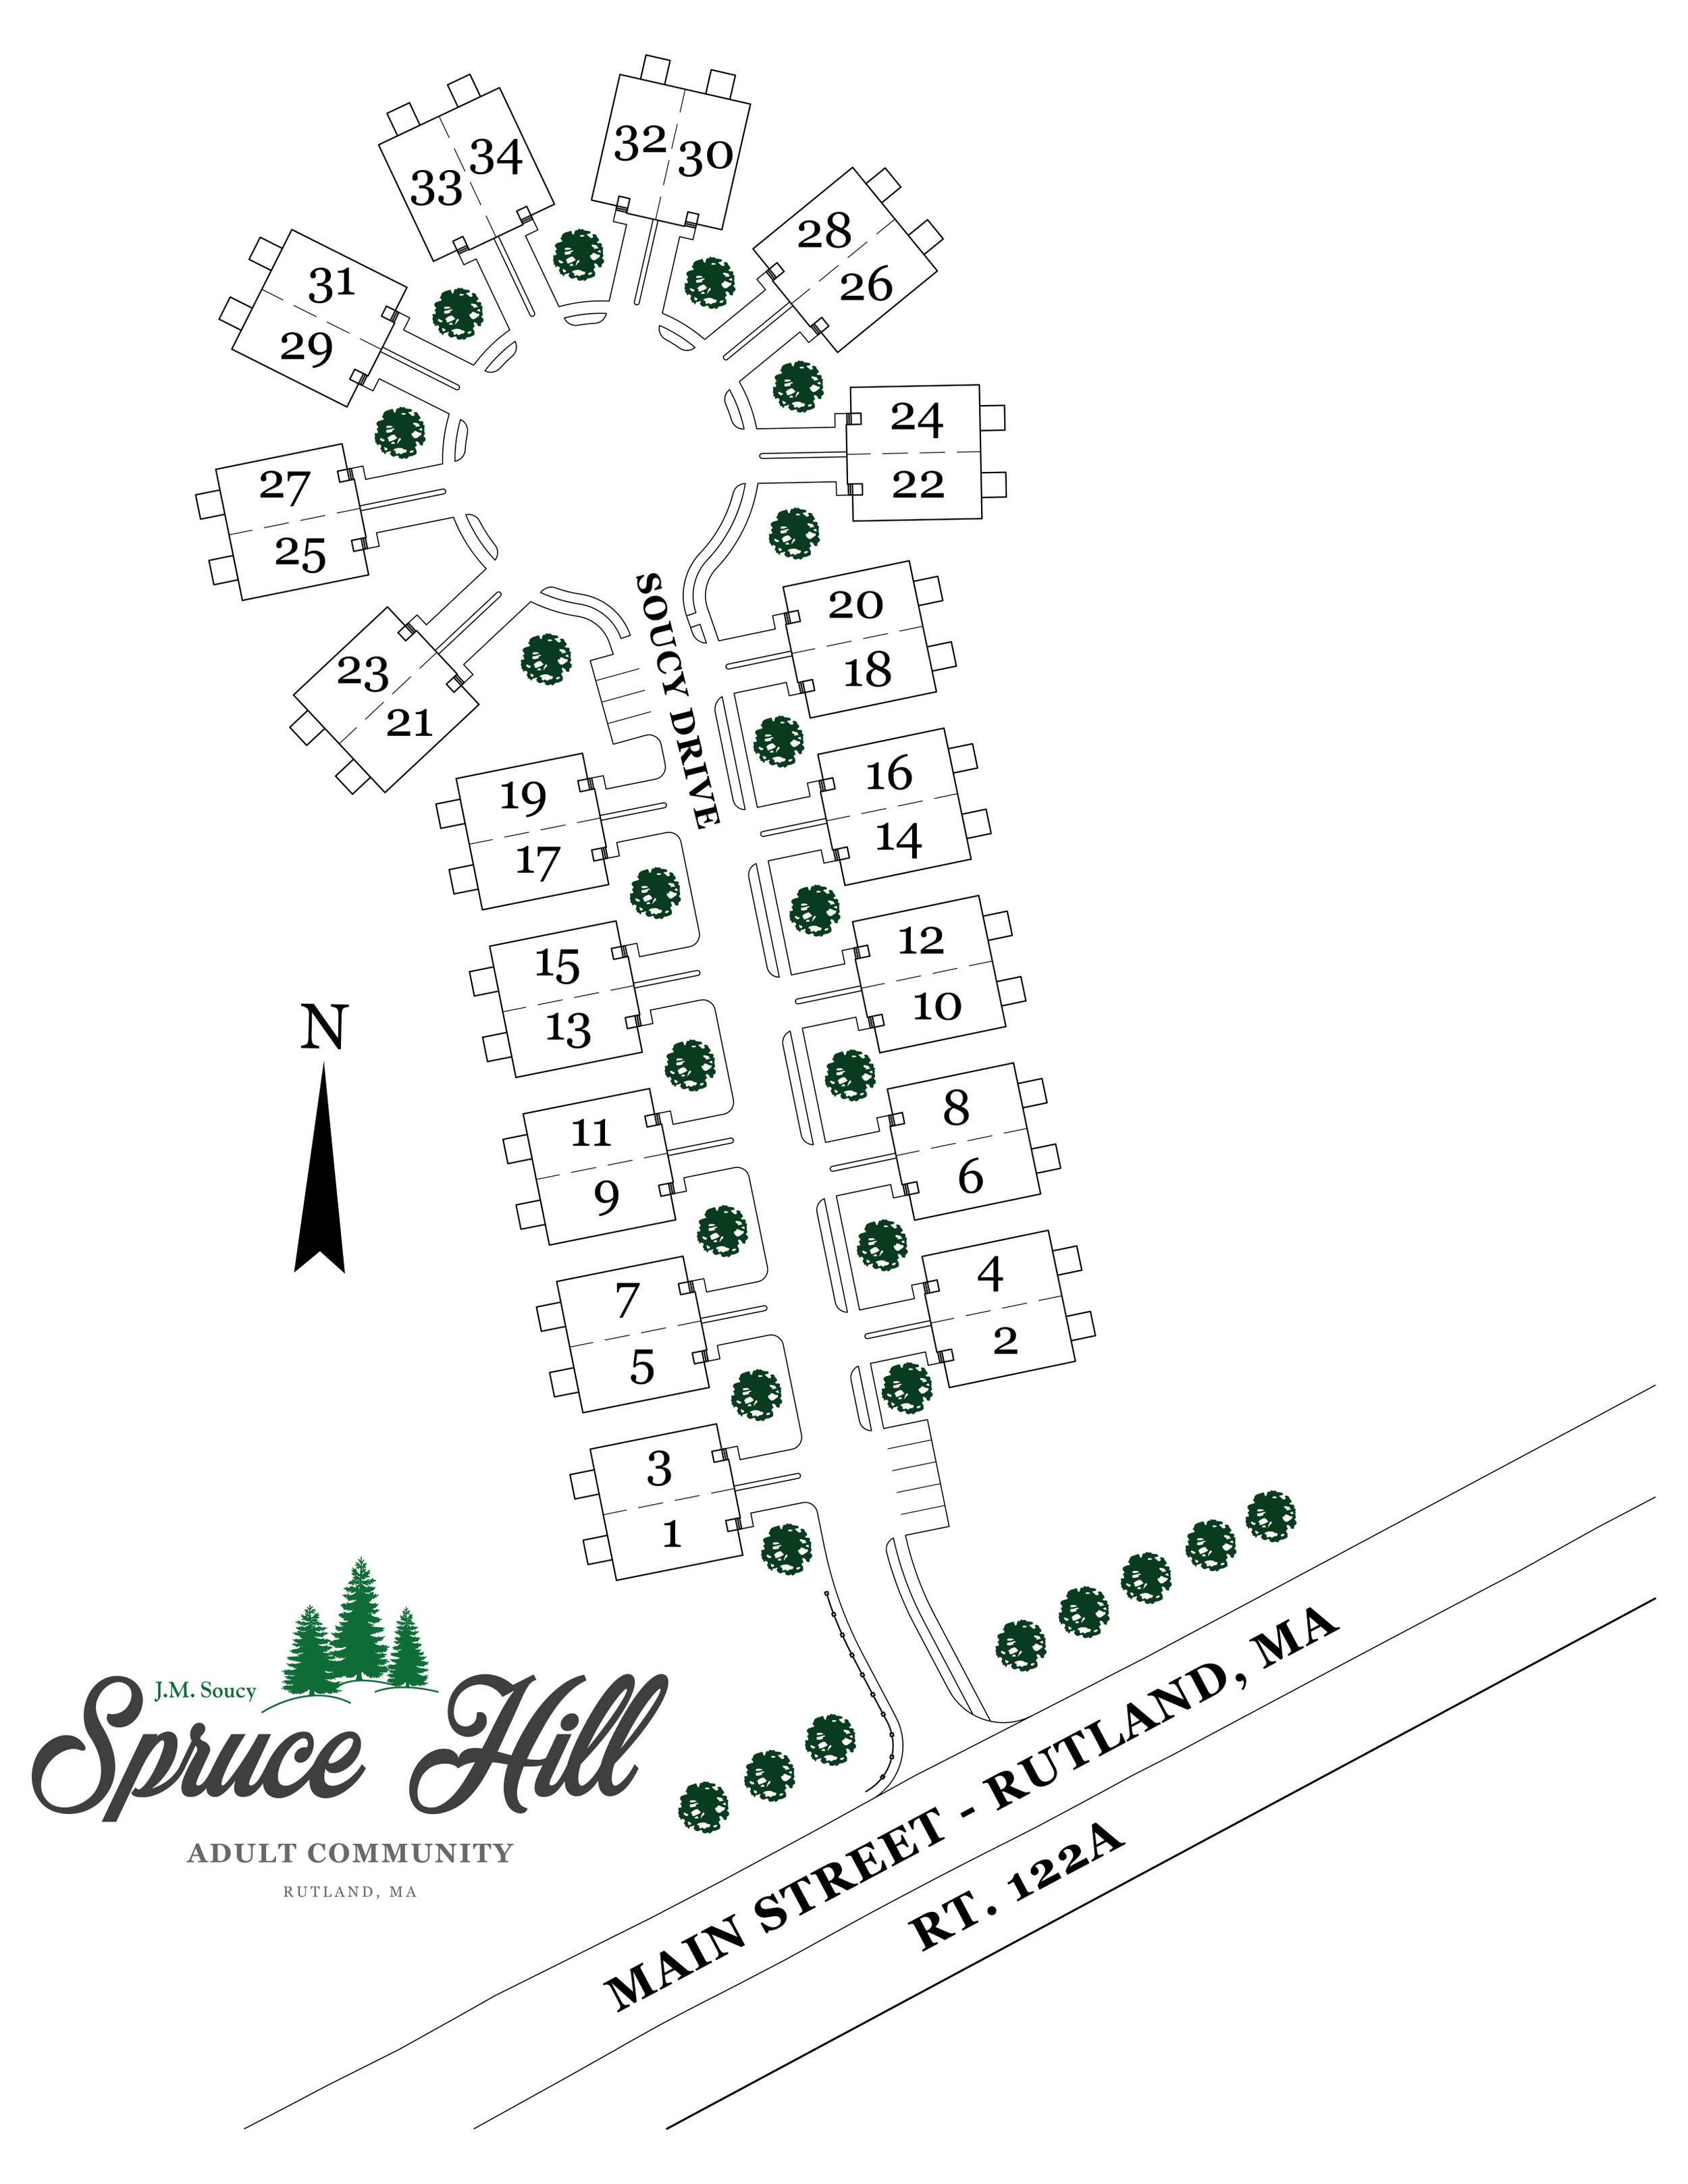 Soucy Spruce Hill - Map.jpg